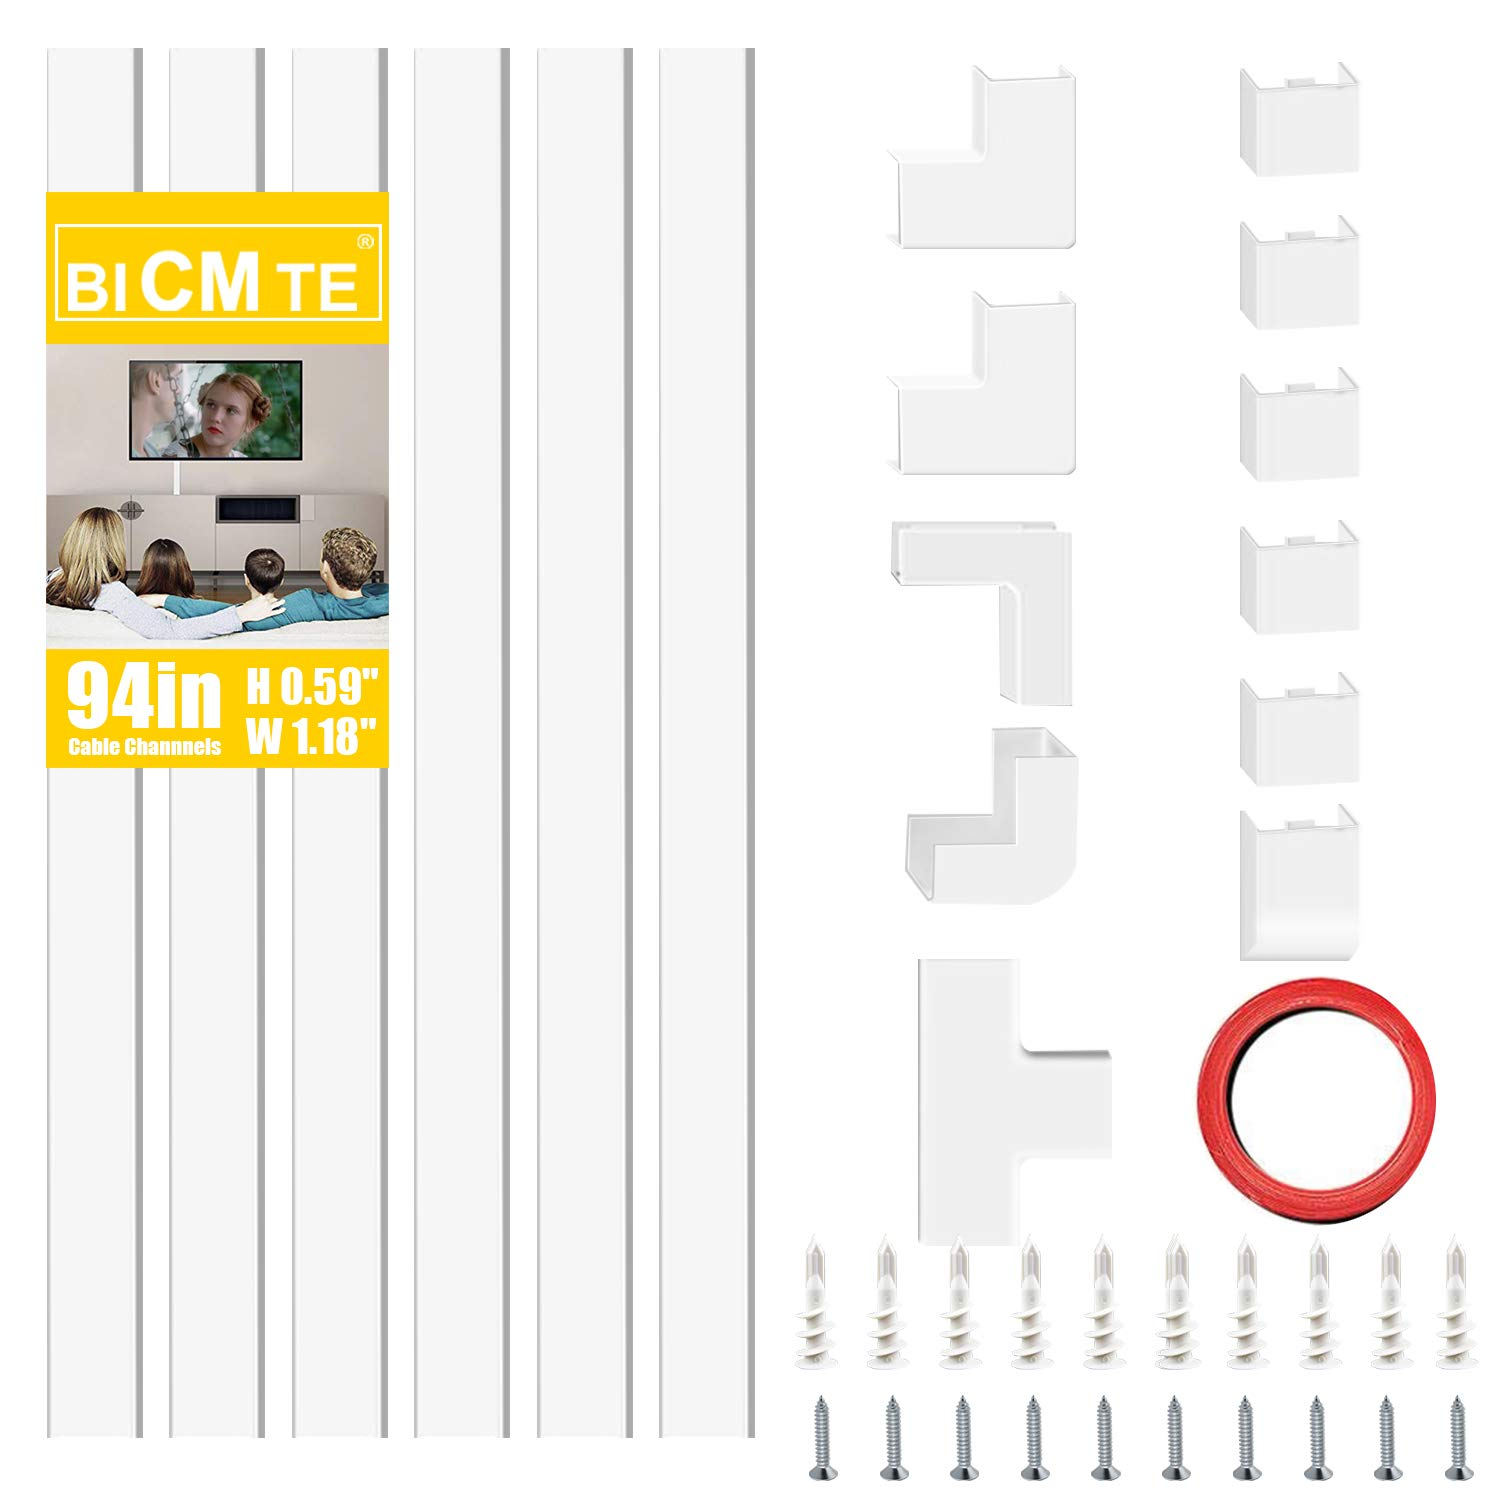 Cable Concealer On-Wall Cord Cover Raceway Kit - Cable Management System to Hide Cables, Wire Hider ,Cords, or Wires - Cord Organizer for Wall Mounted TVs and Computers at Home or in The Office